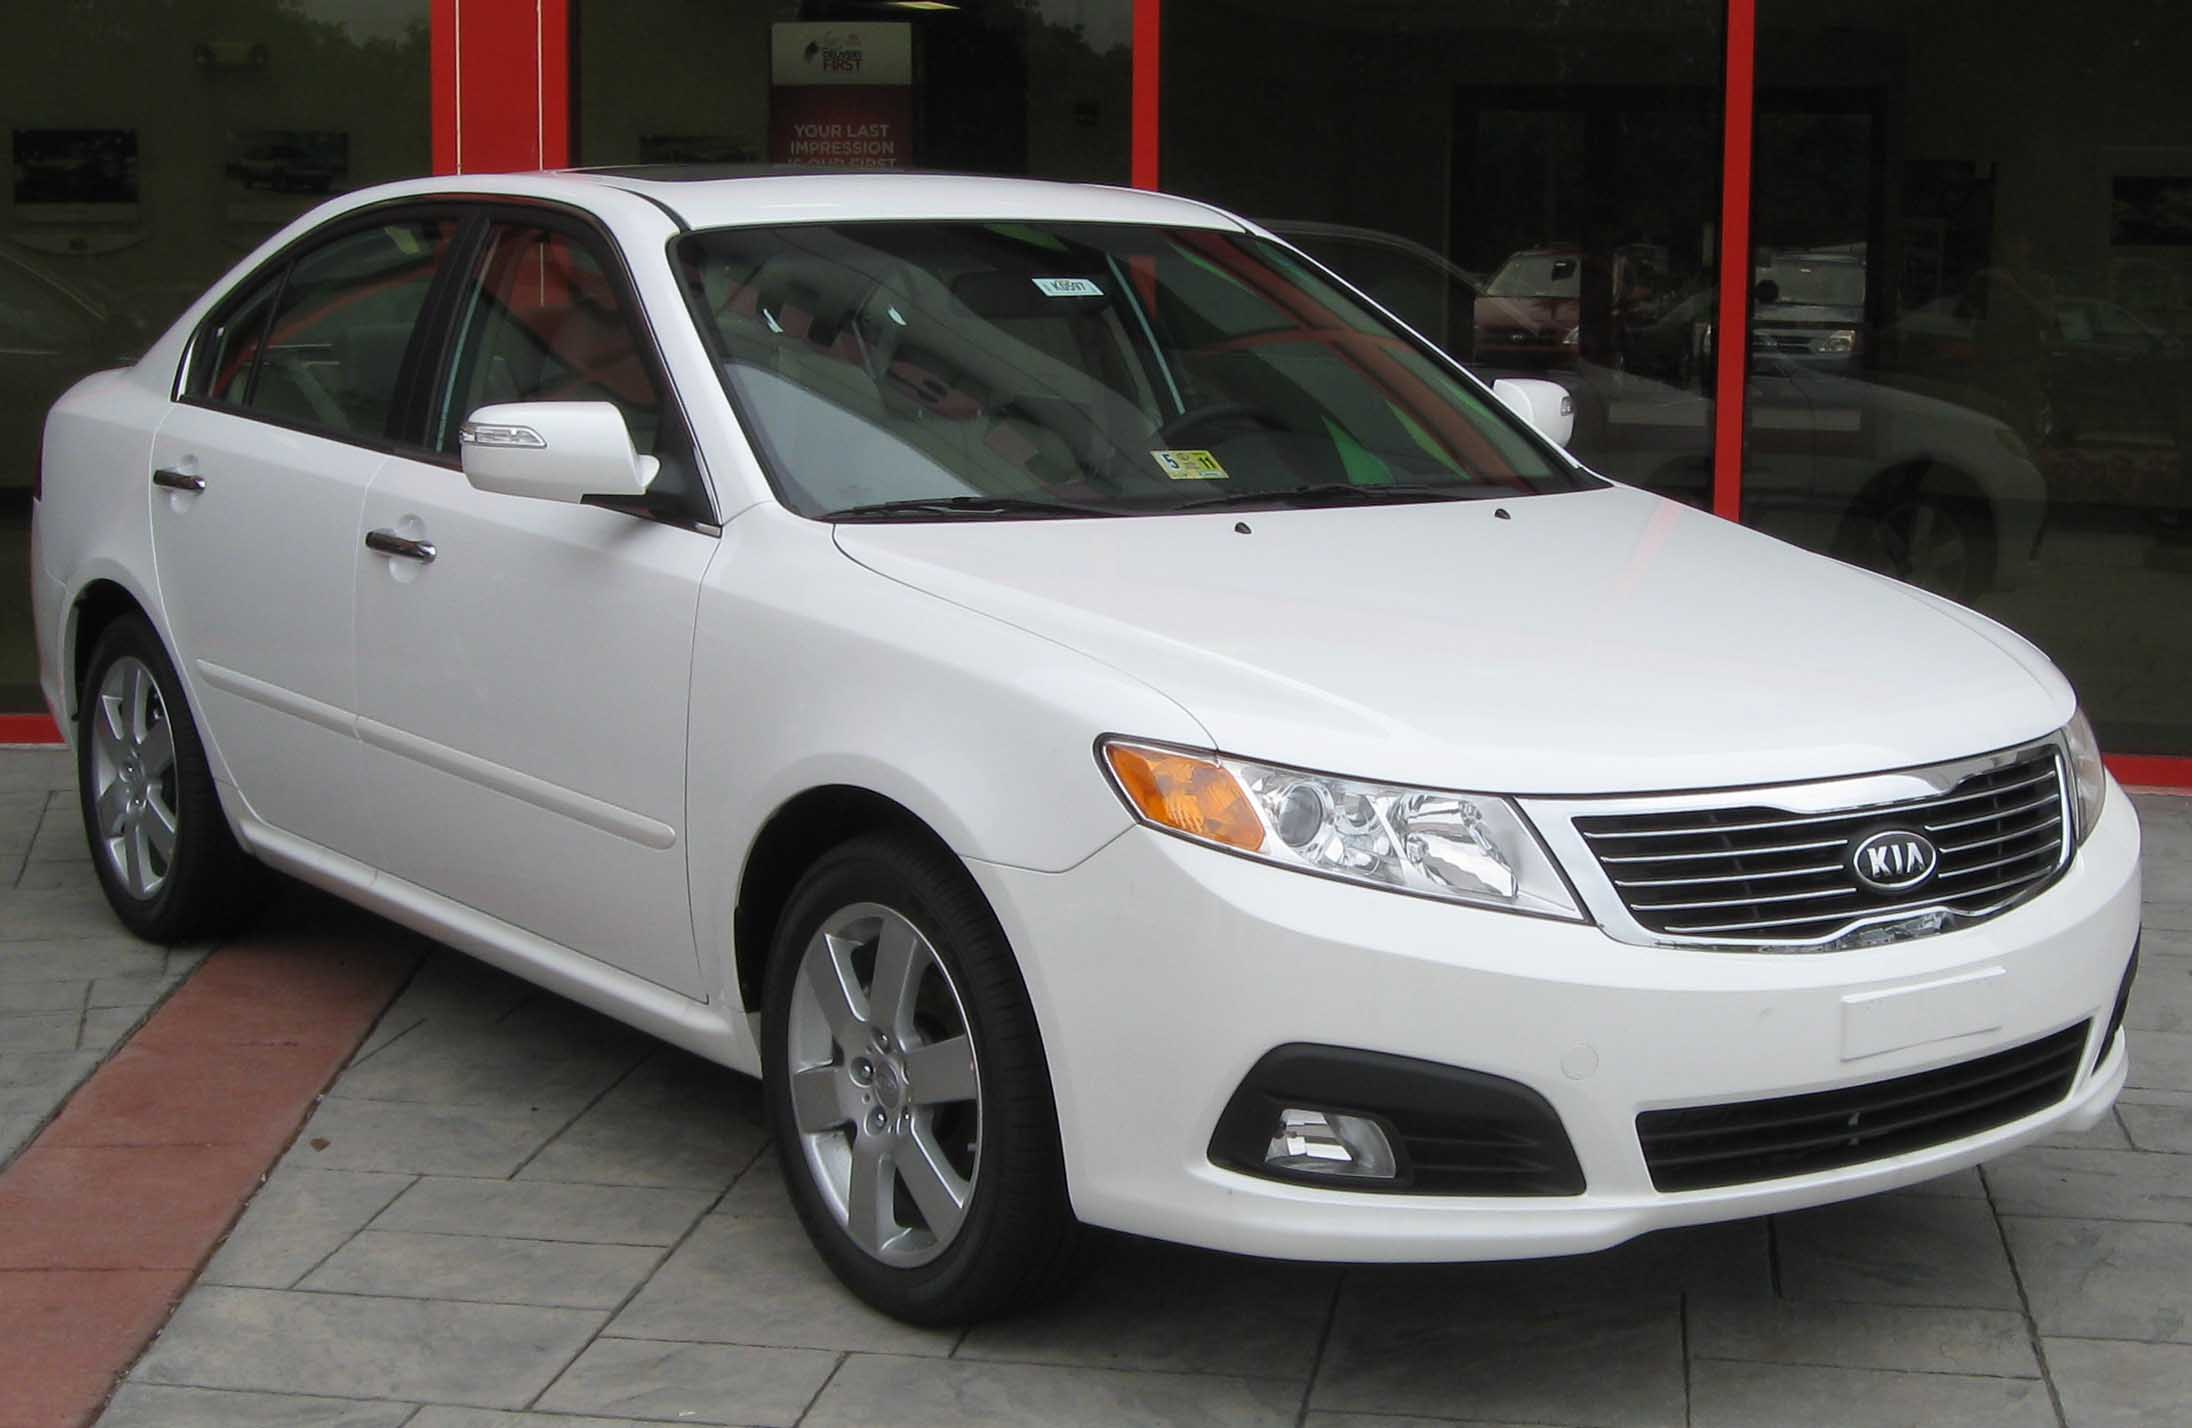 Description 2010 Kia Optima EX -- 06-16-2010.jpg